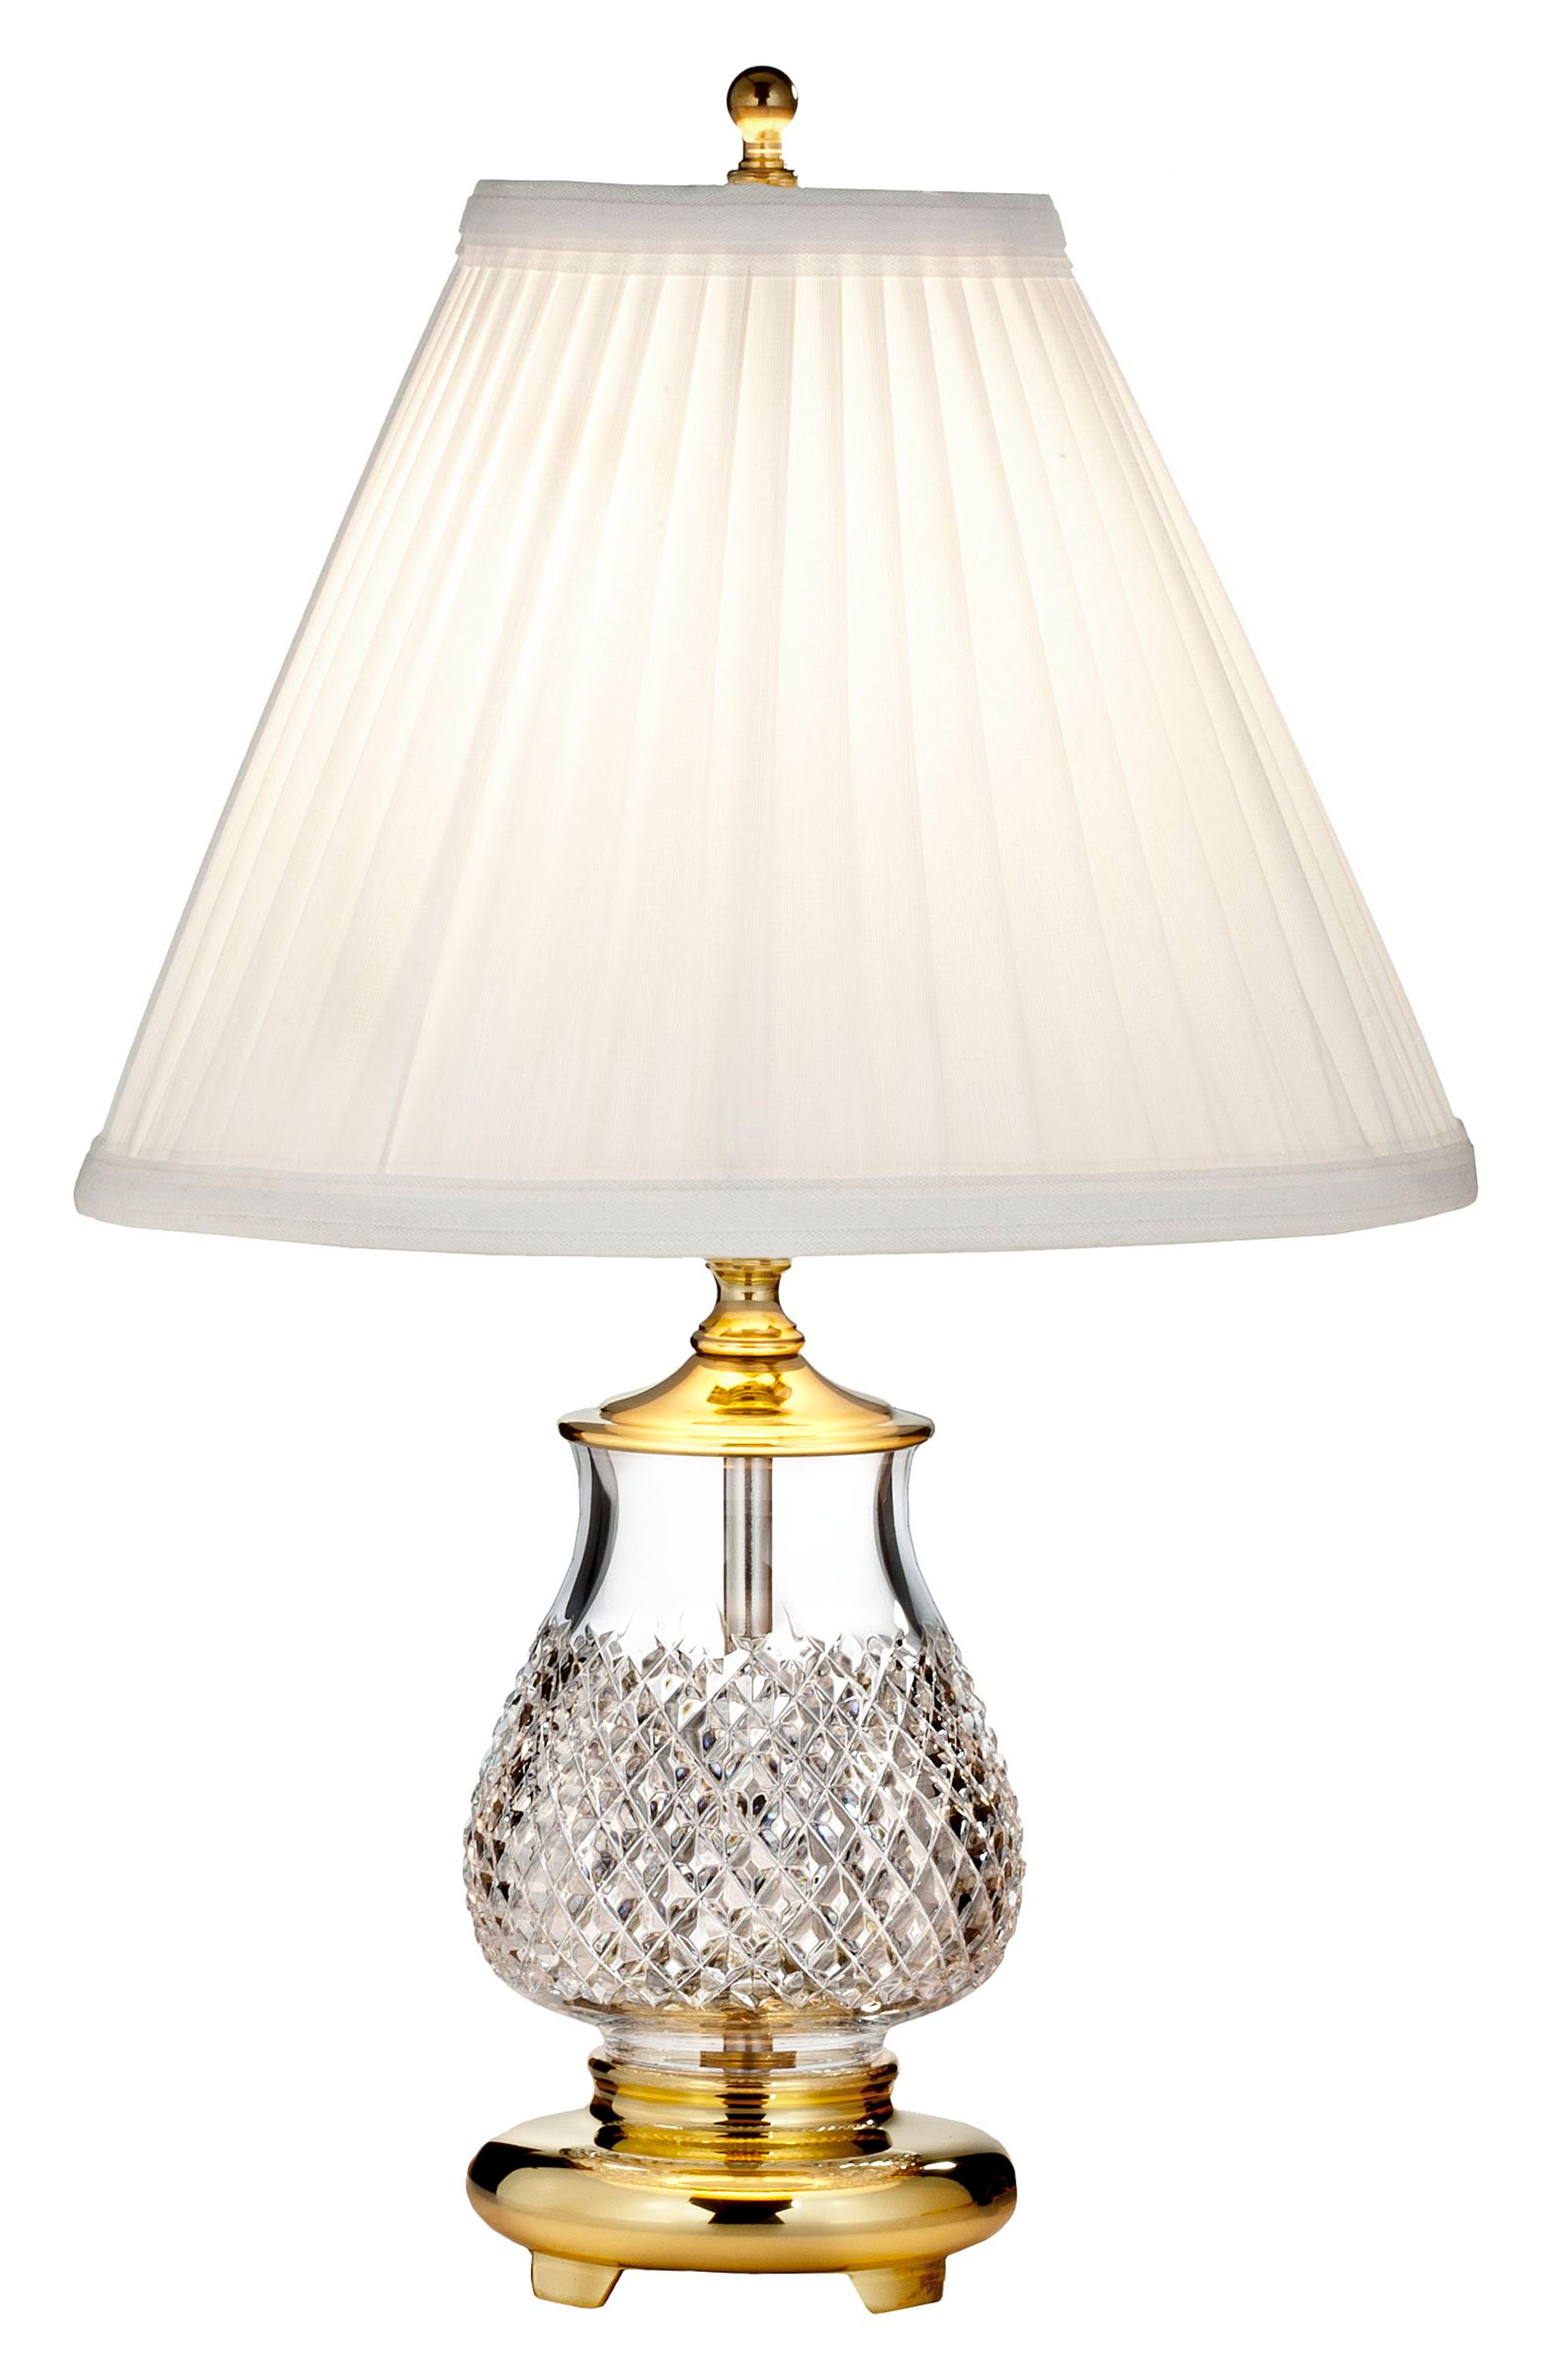 Alternate Image 1 Selected - Waterford Alana Crystal Table Lamp